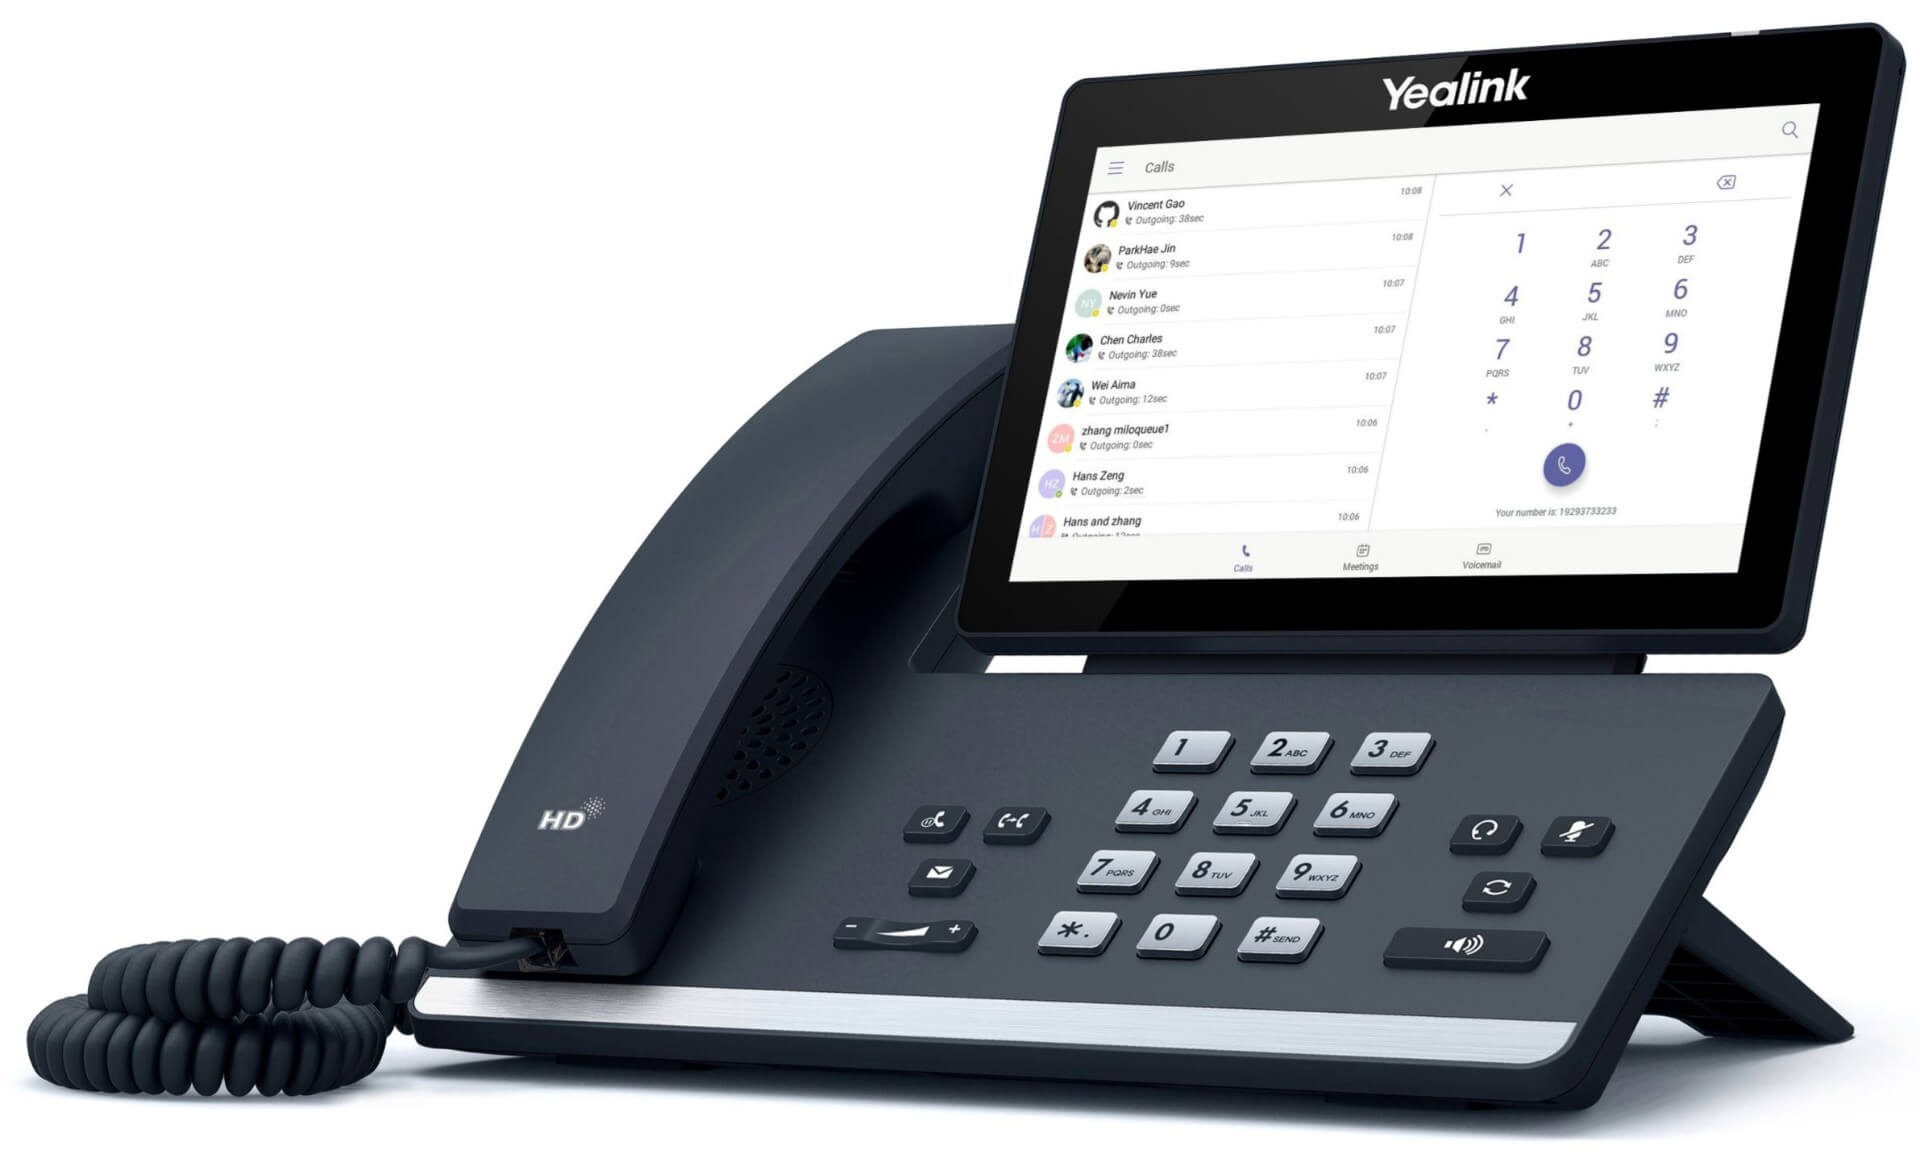 Yealink T56 Business IP Phone Image